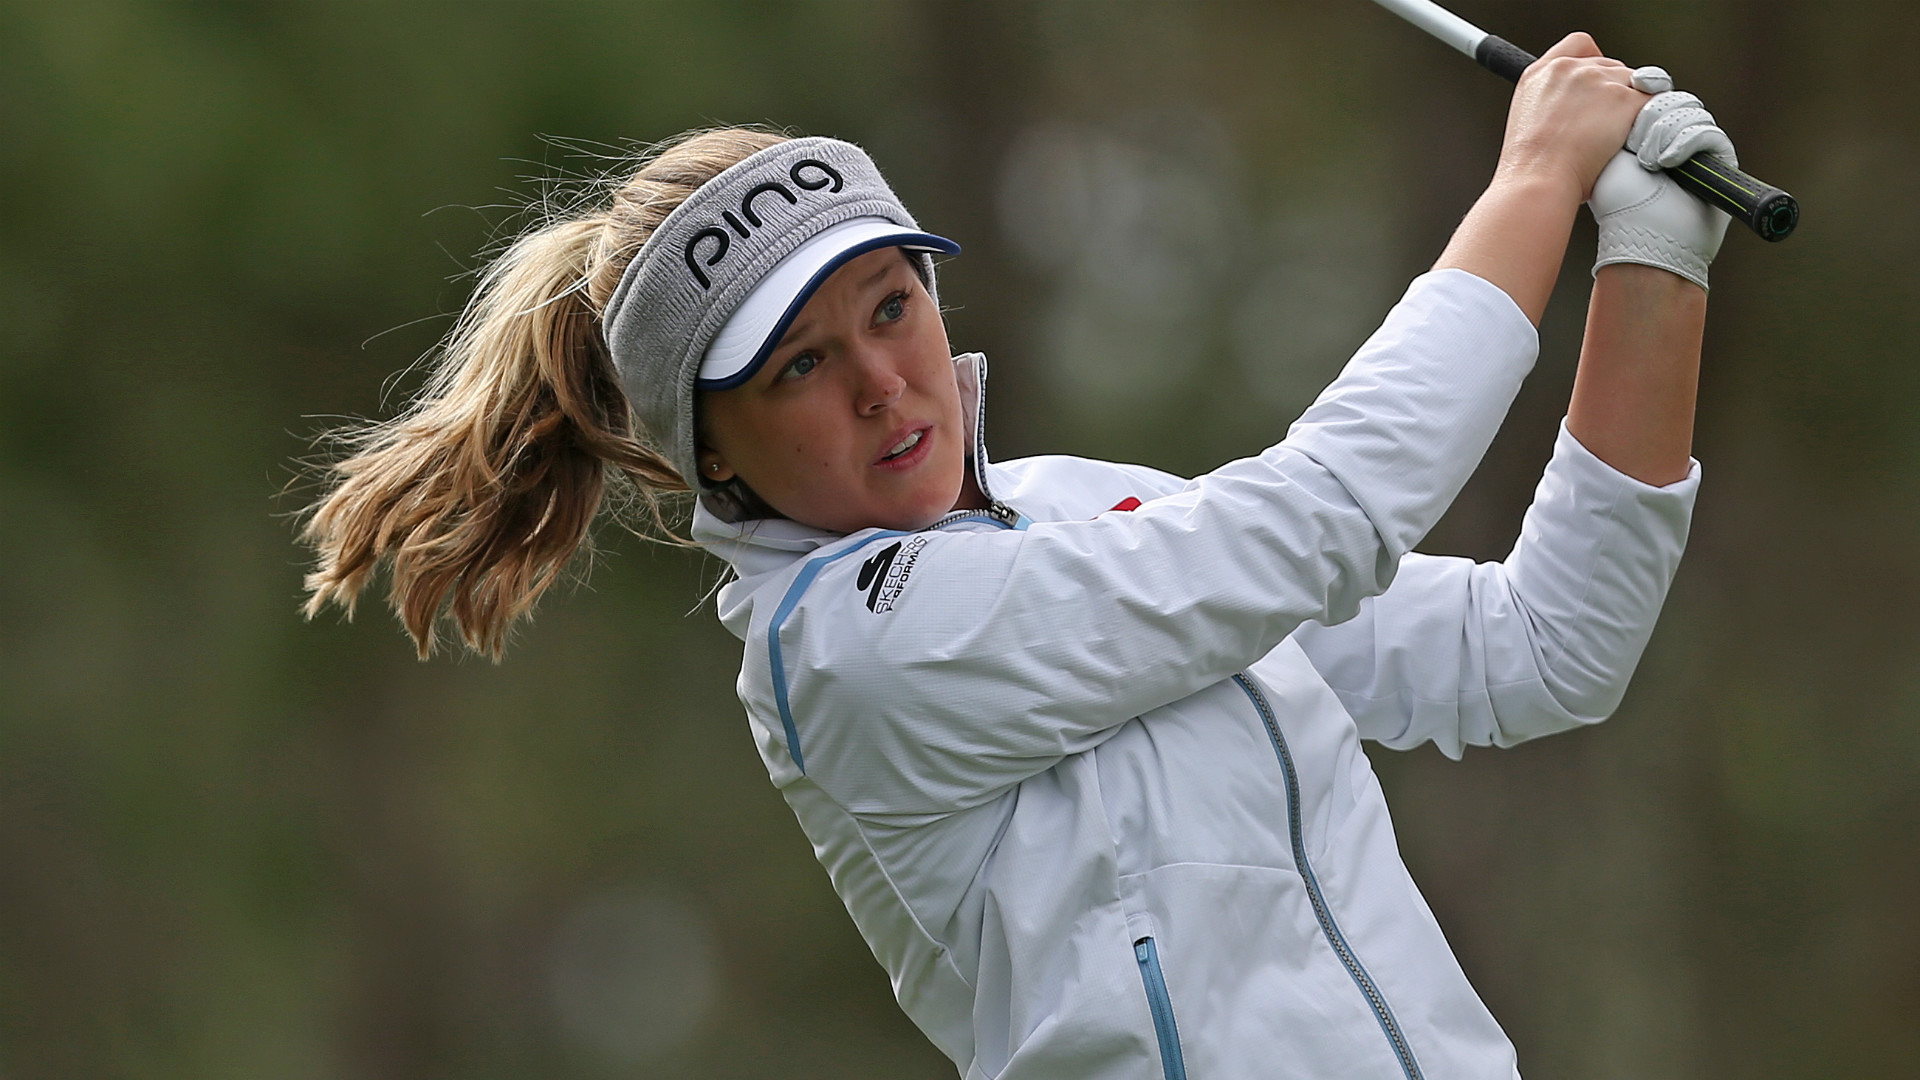 Ji survives cold and wind to win LPGA Tour opener